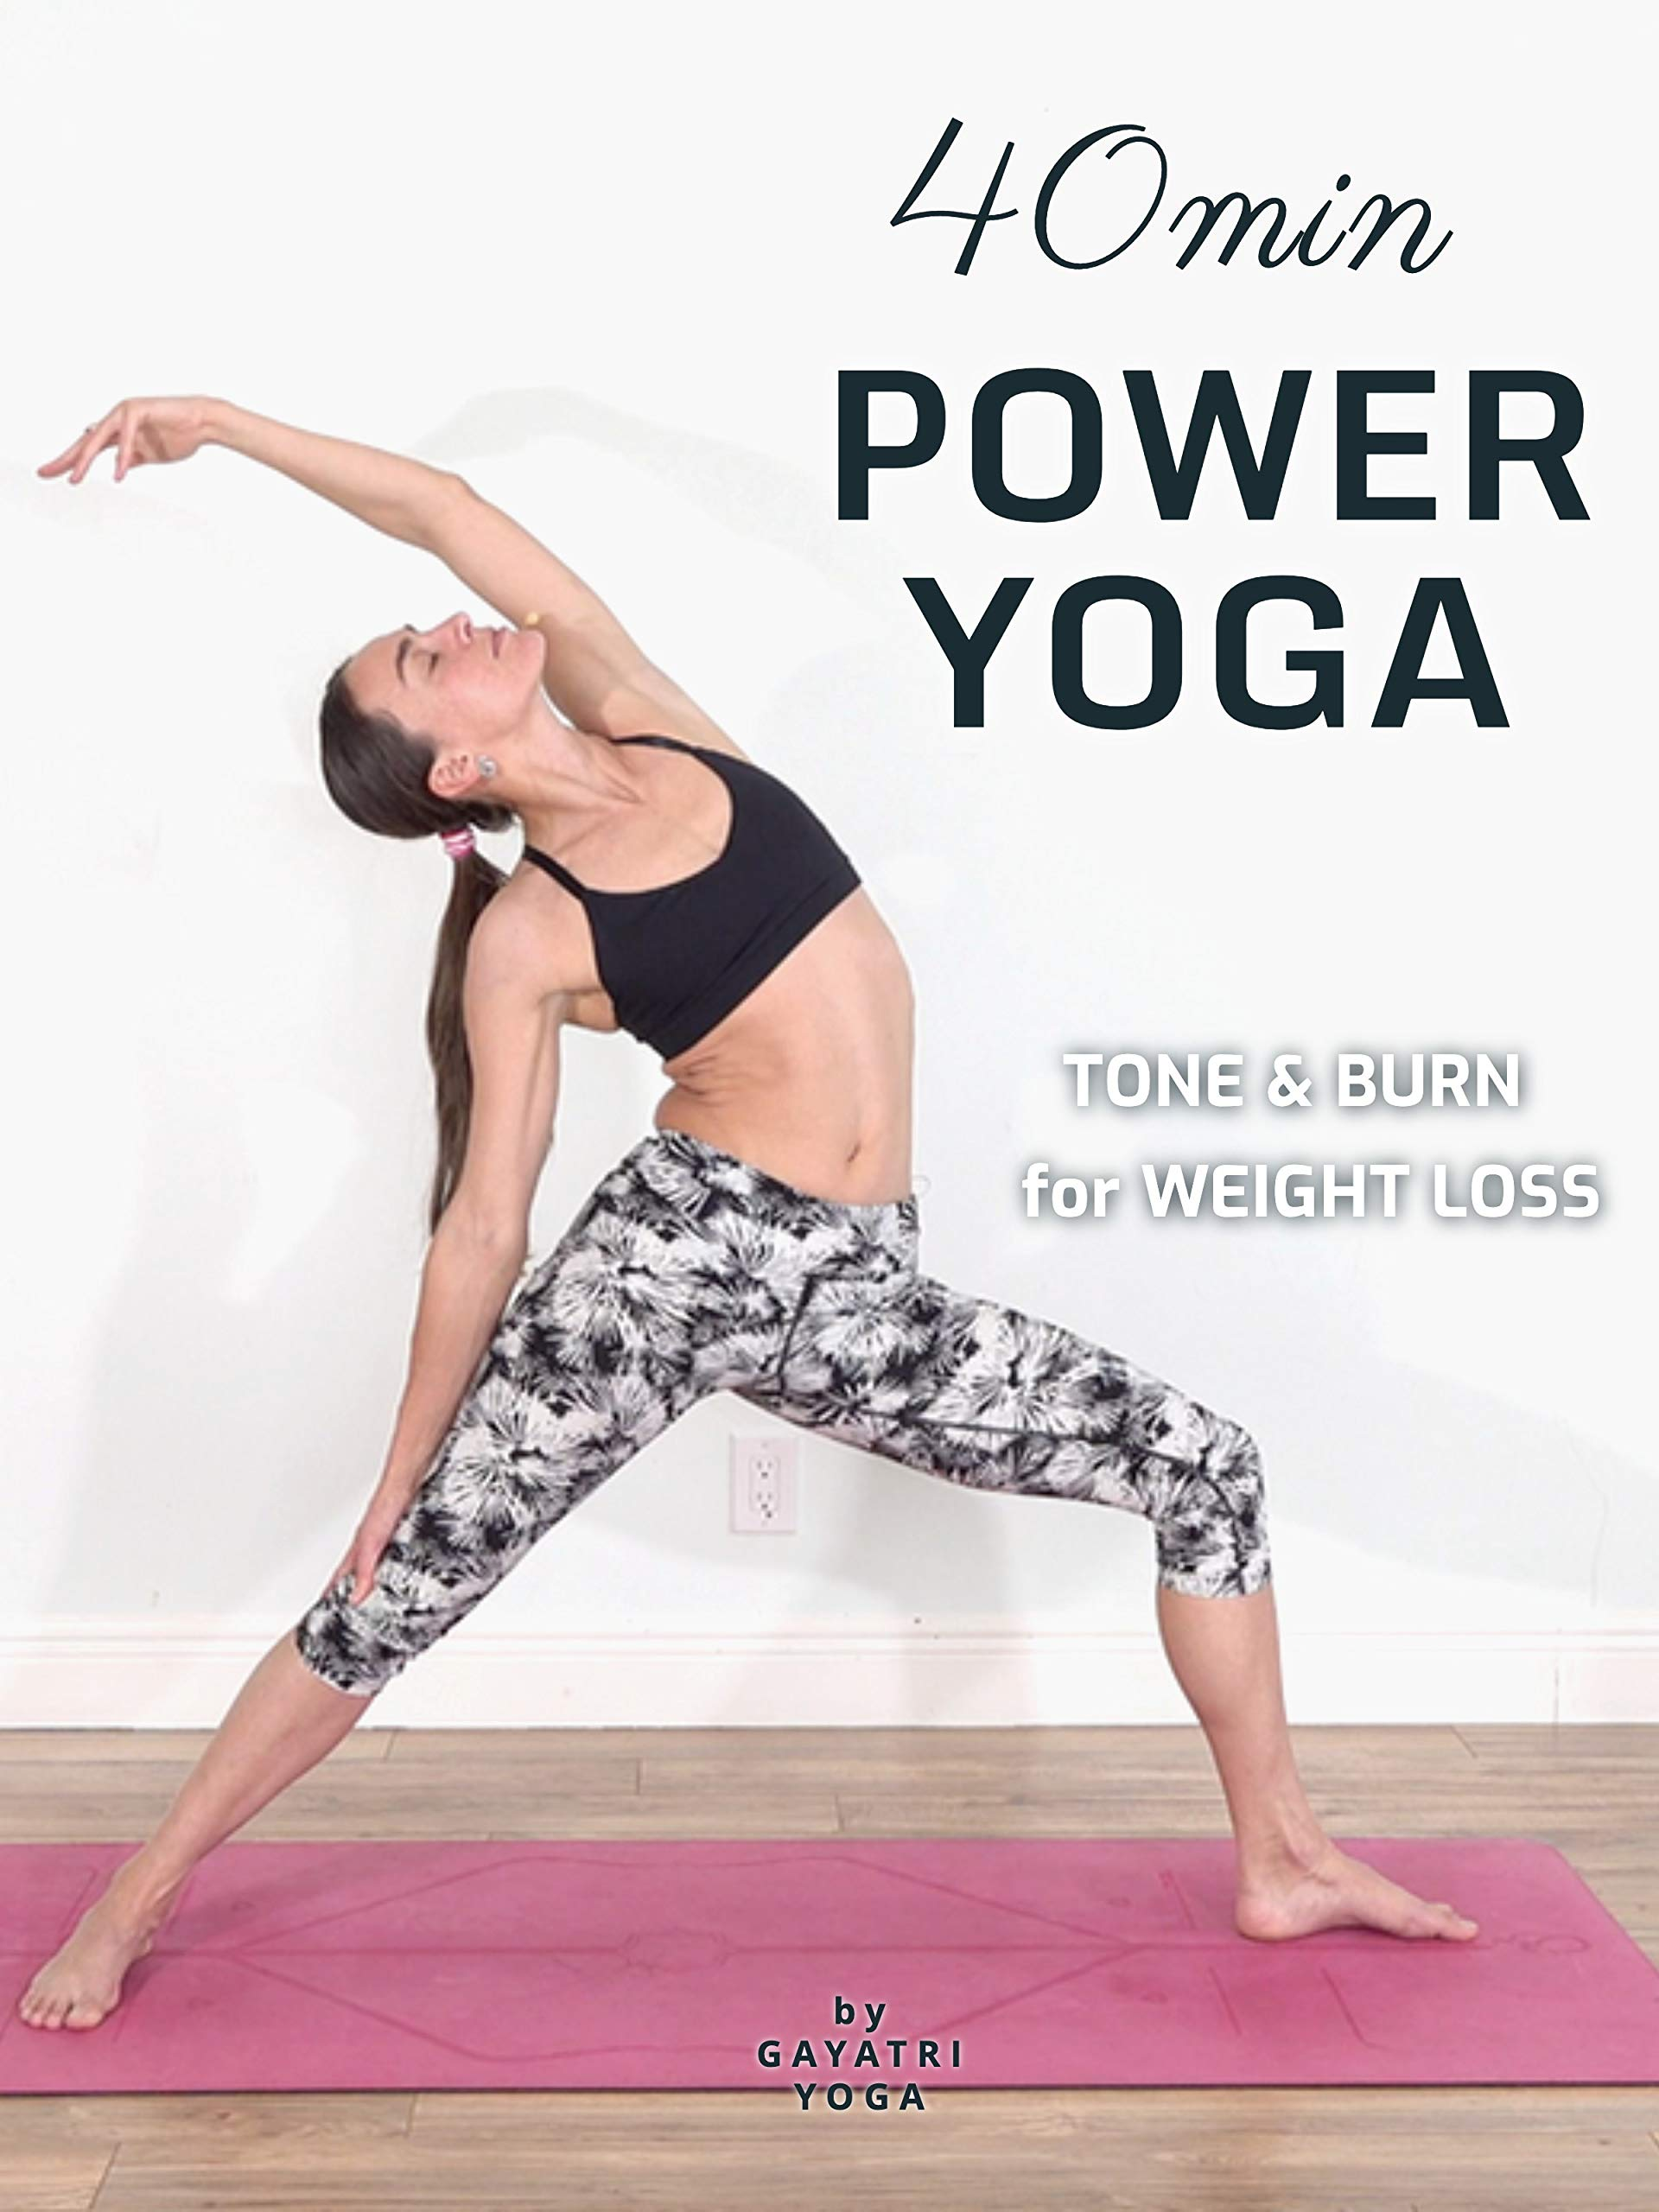 40 Min Power Yoga - Tone & Burn for Weight Loss | Gayatri Yoga